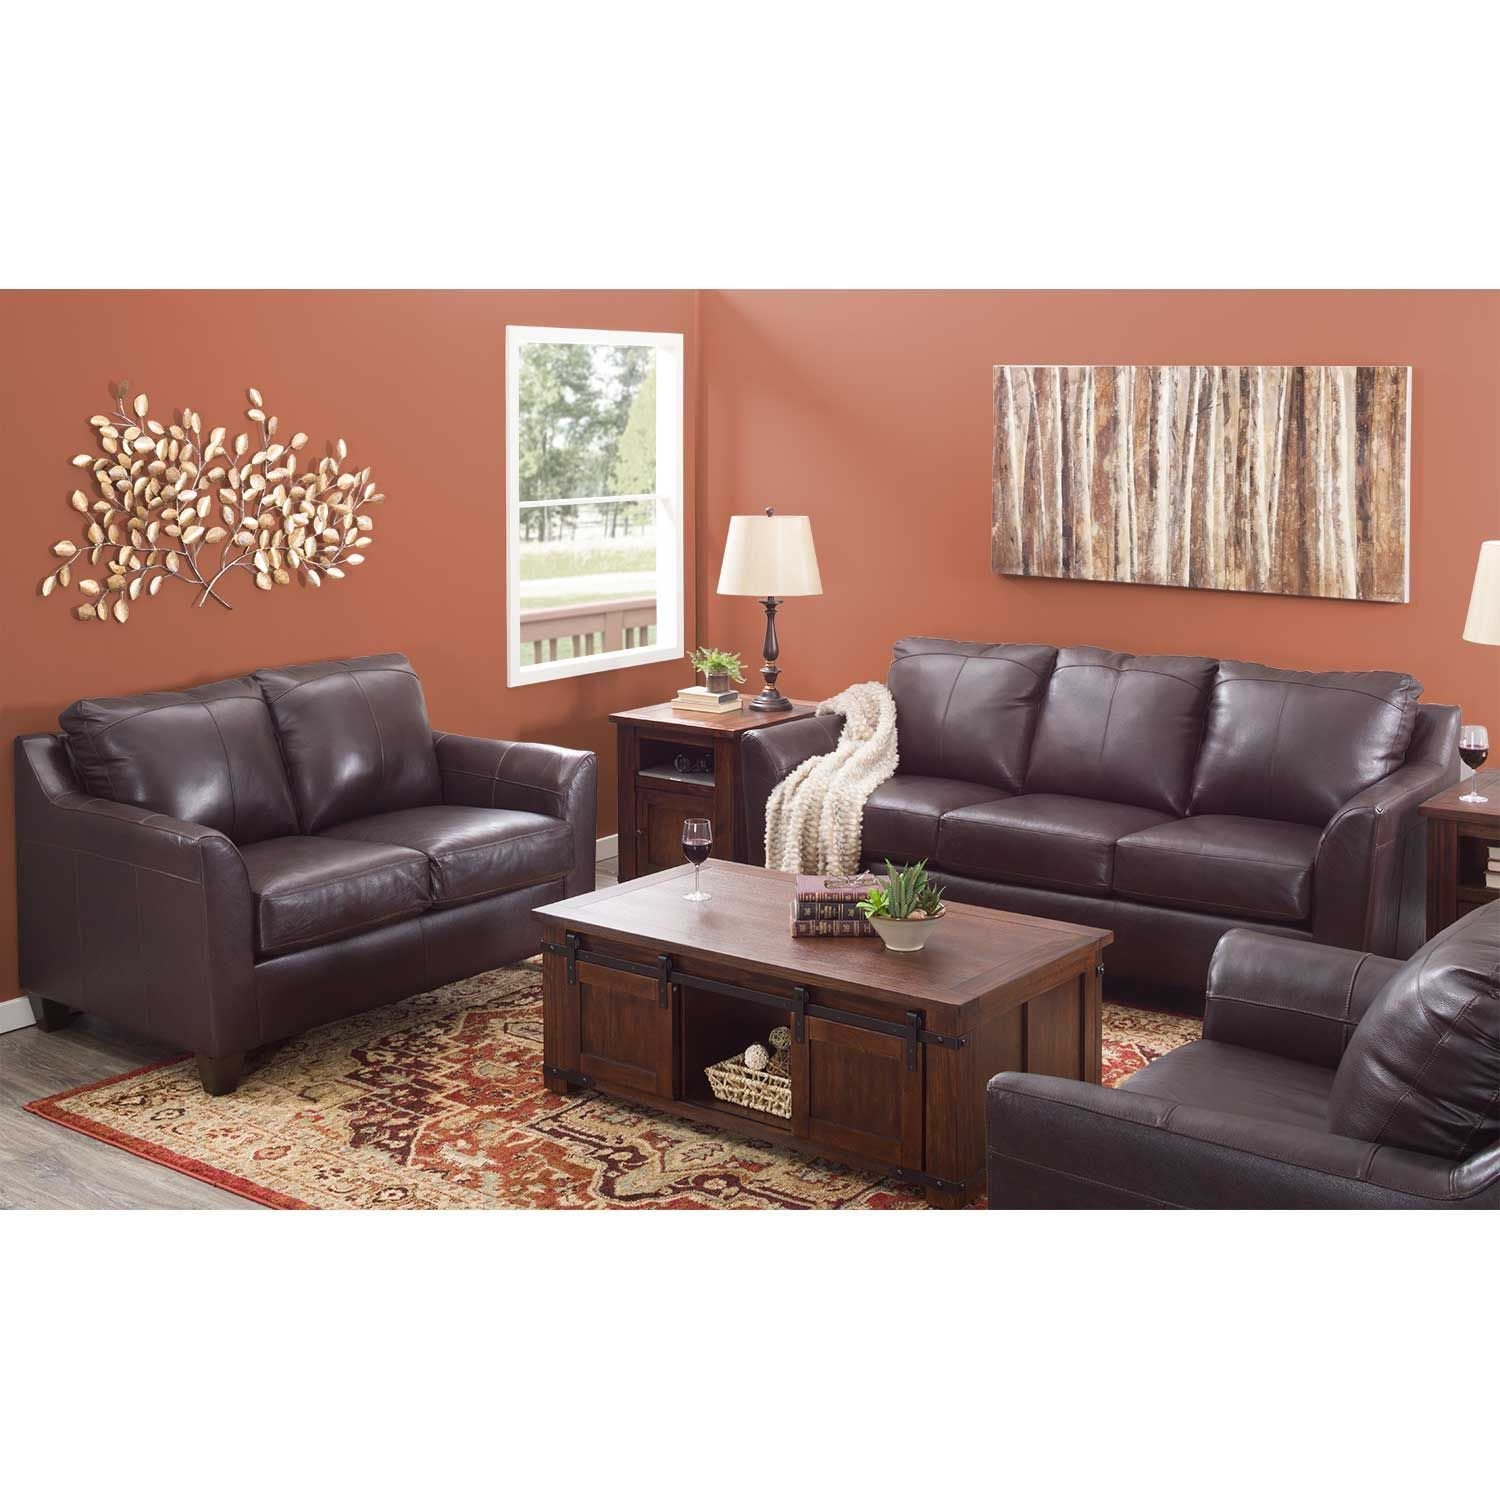 Lane Bark Leather Sofa and Loveseat